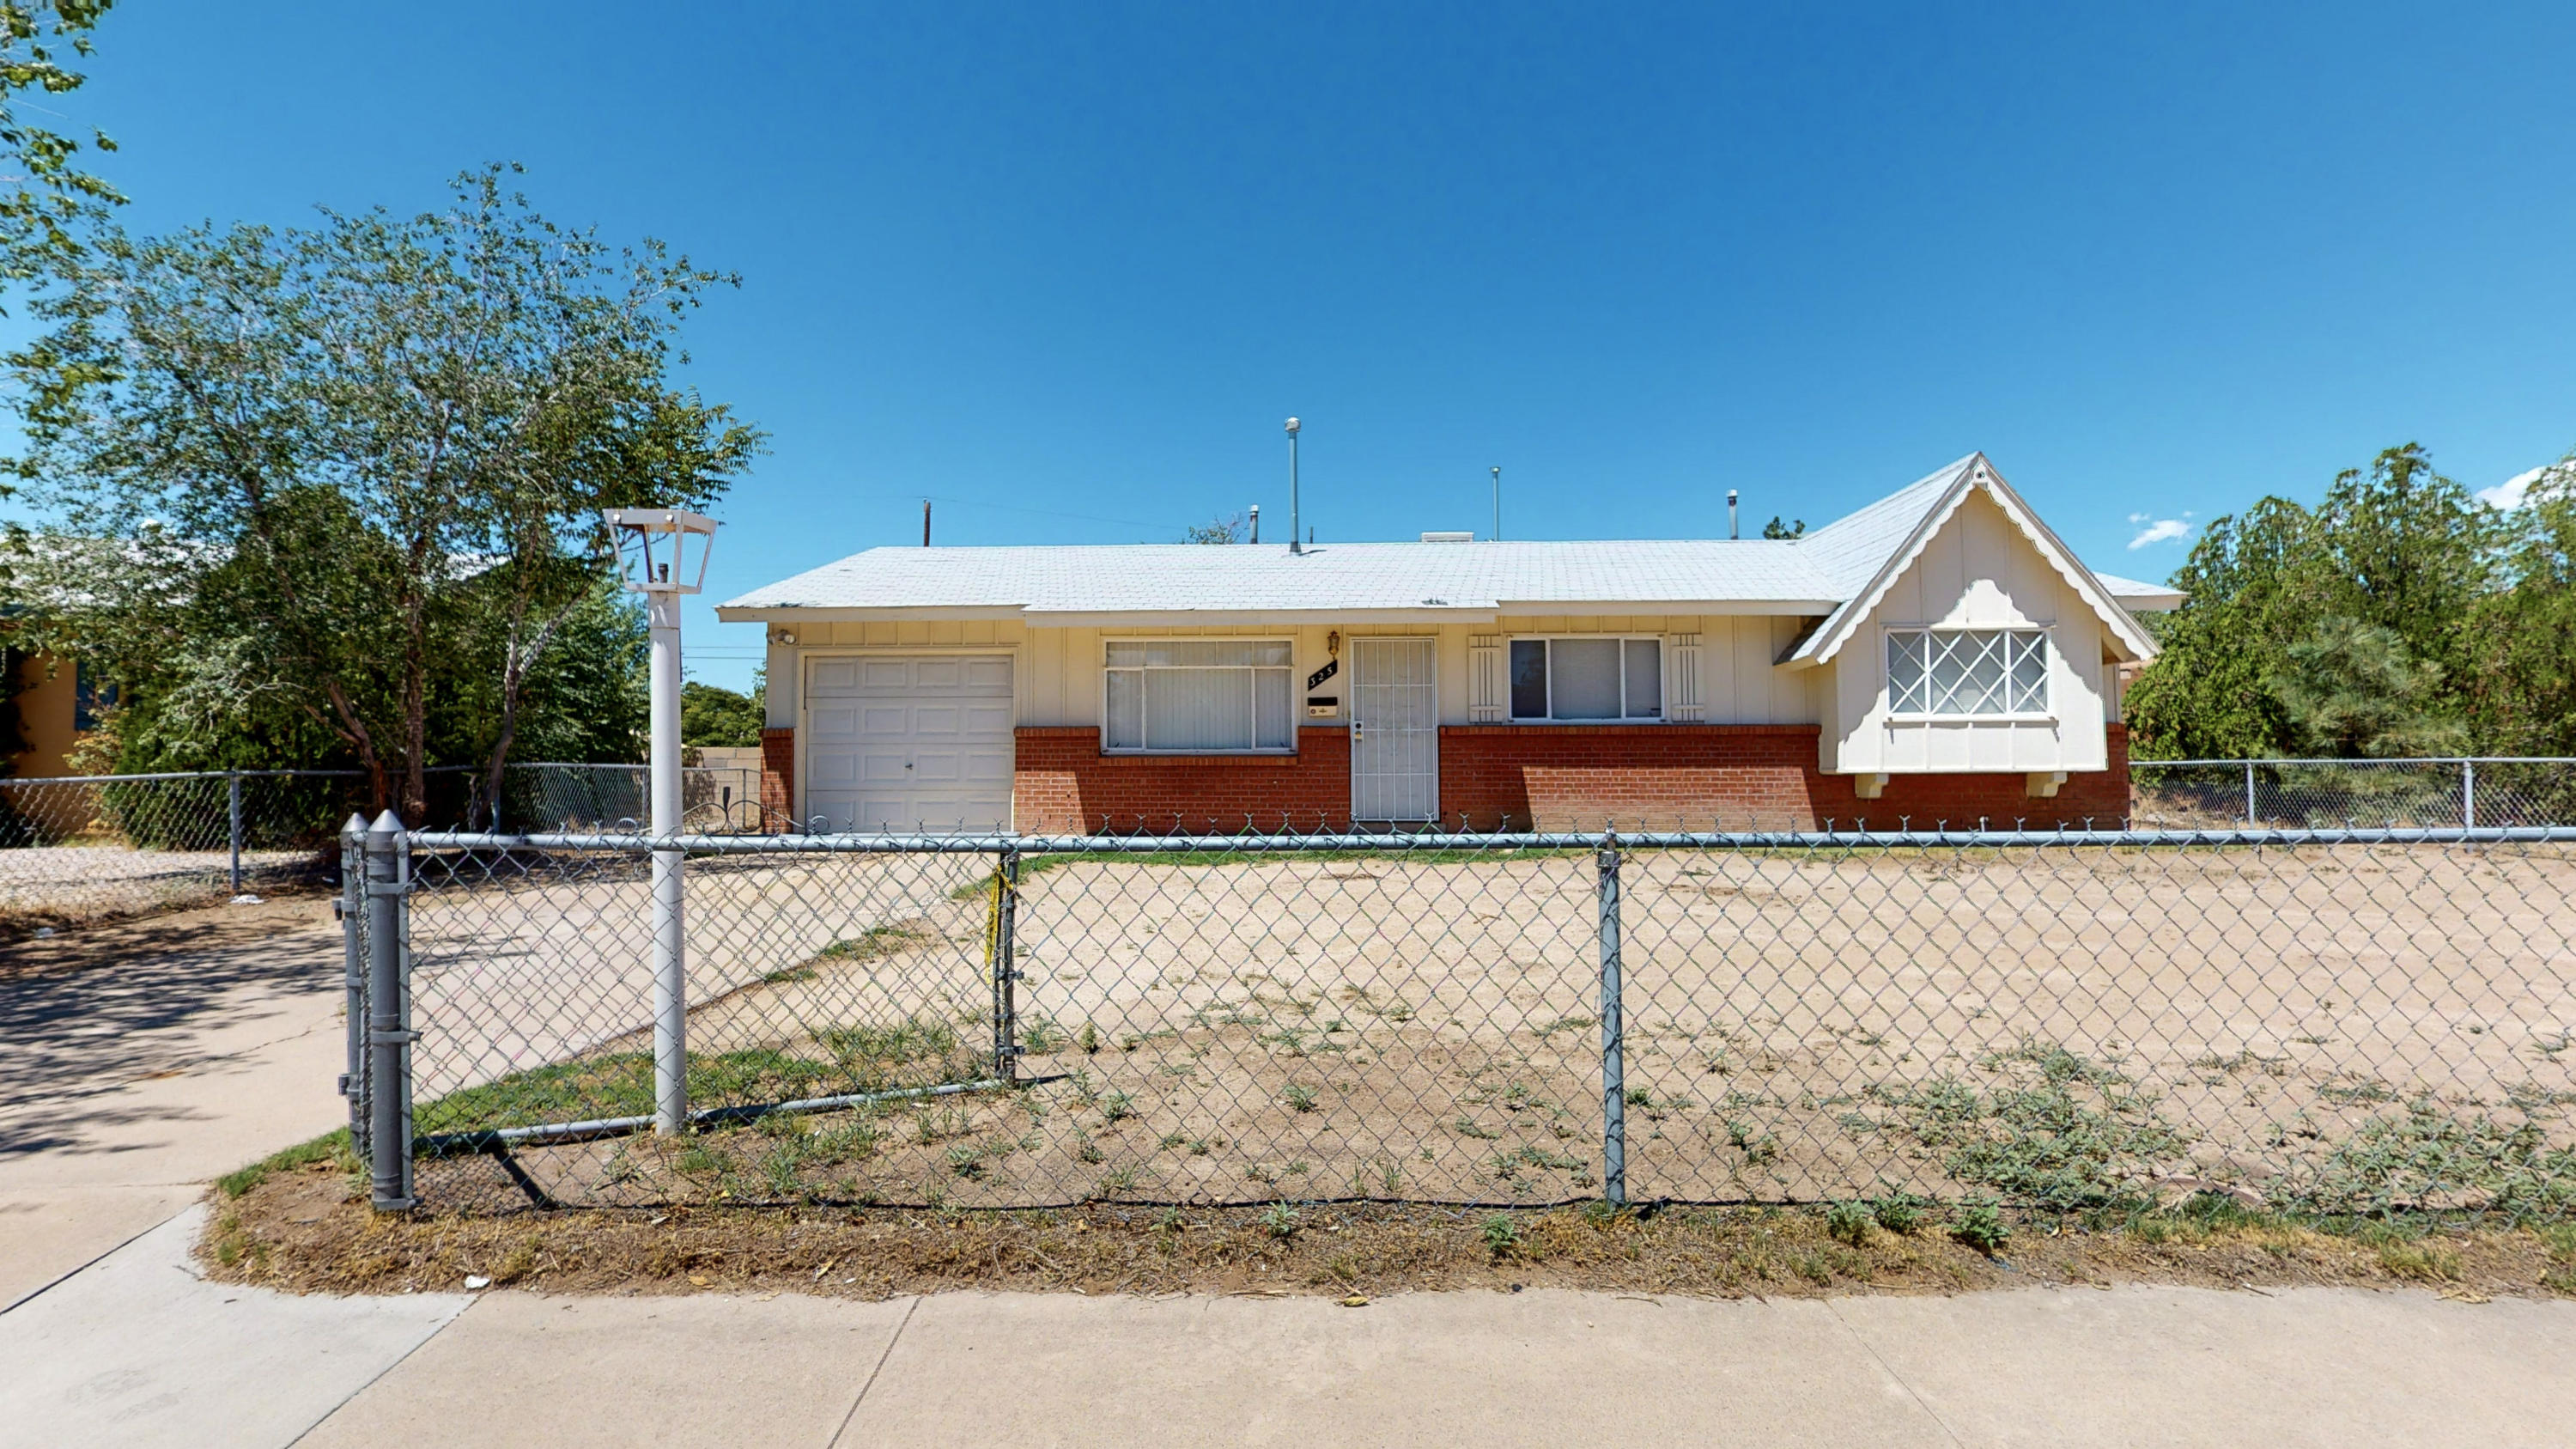 MULTIPLE OFFERS RECEIVED, SHOWINGS WILL NOT BE ALLOWED AFTER 8PM, SUNDAY AUG. 2, 2020. ''HIGHEST AND BEST OFFERS DUE, MONDAY AUG. 3 2020 @ 10AM MDT. Great Value for a 3 Bedroom, 2 Bath Home with a single car garage. Large Yards front and back and a very convenient location. Schedule your showing today.